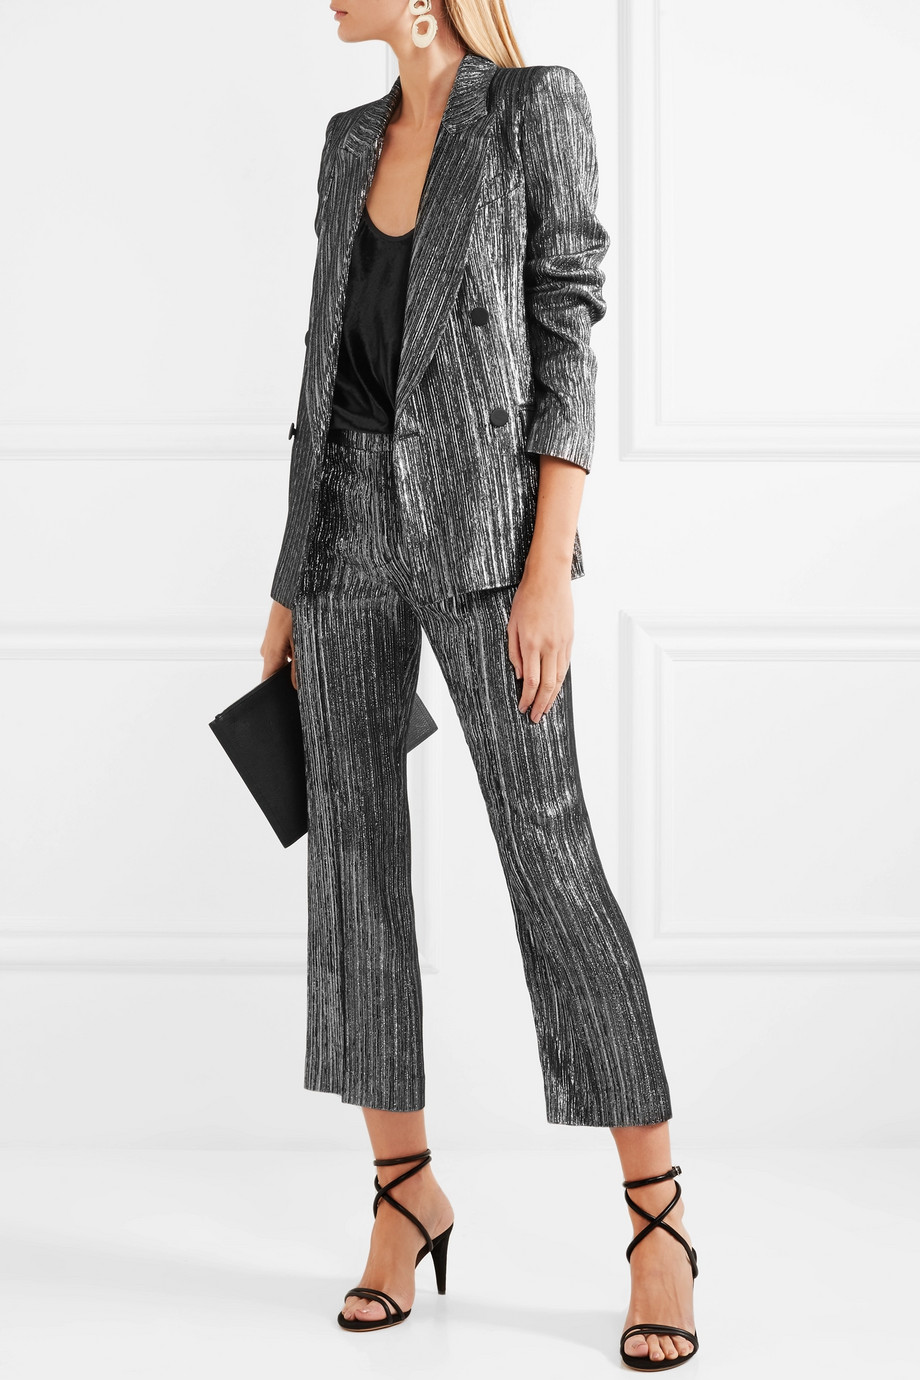 What Should Ladies Wear for a Jacket and Tie Dress Code.jpg